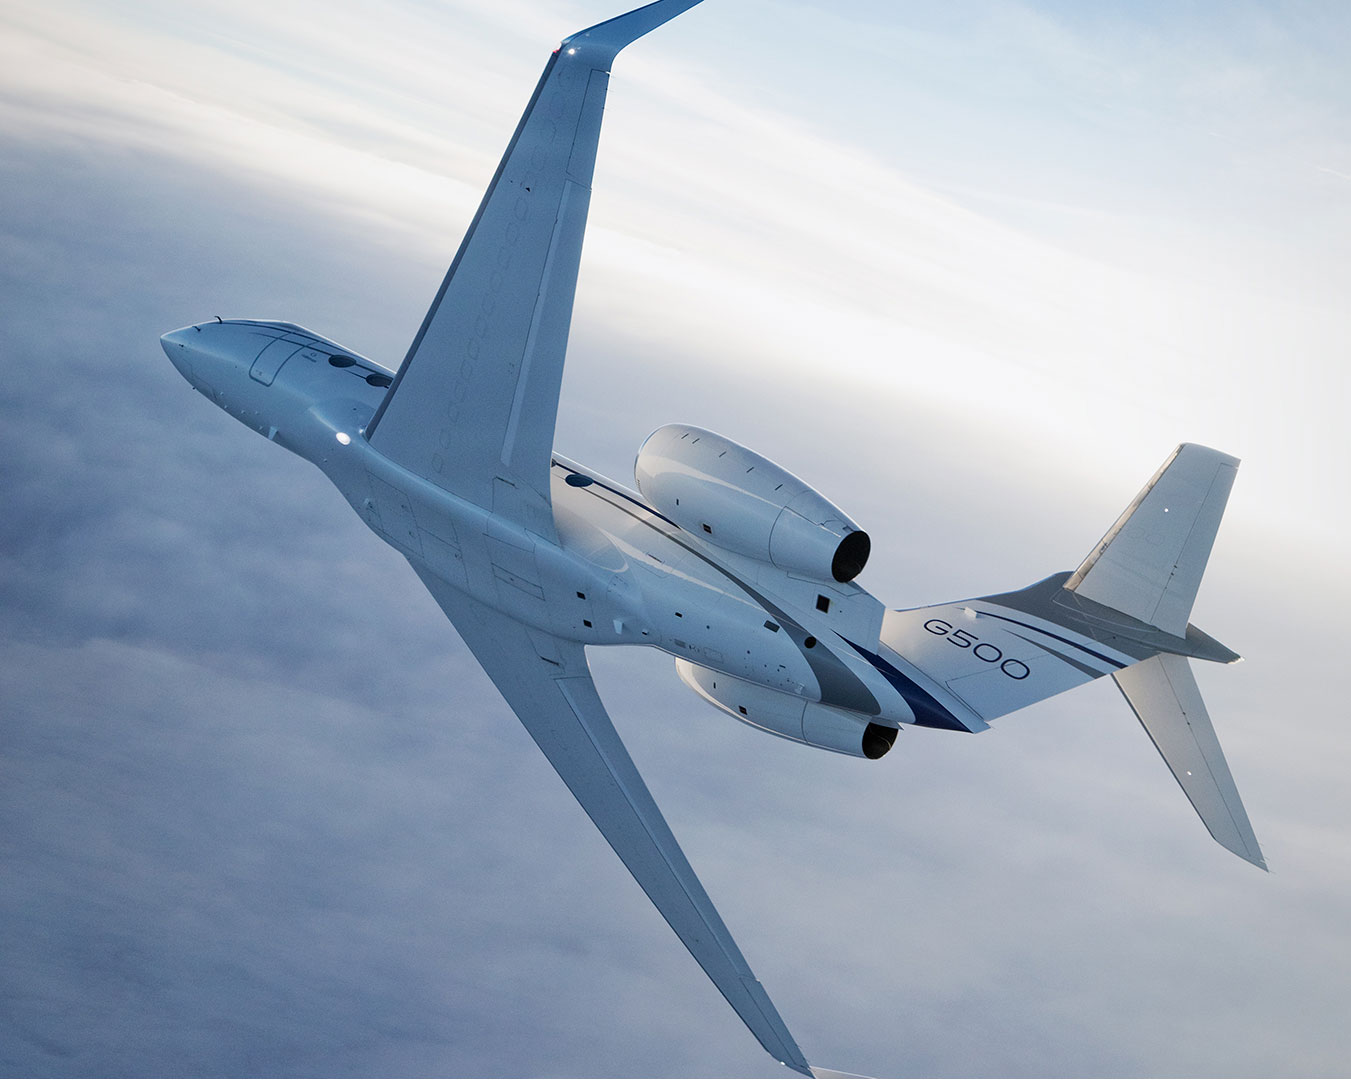 G500 aircraft banking right above the clouds